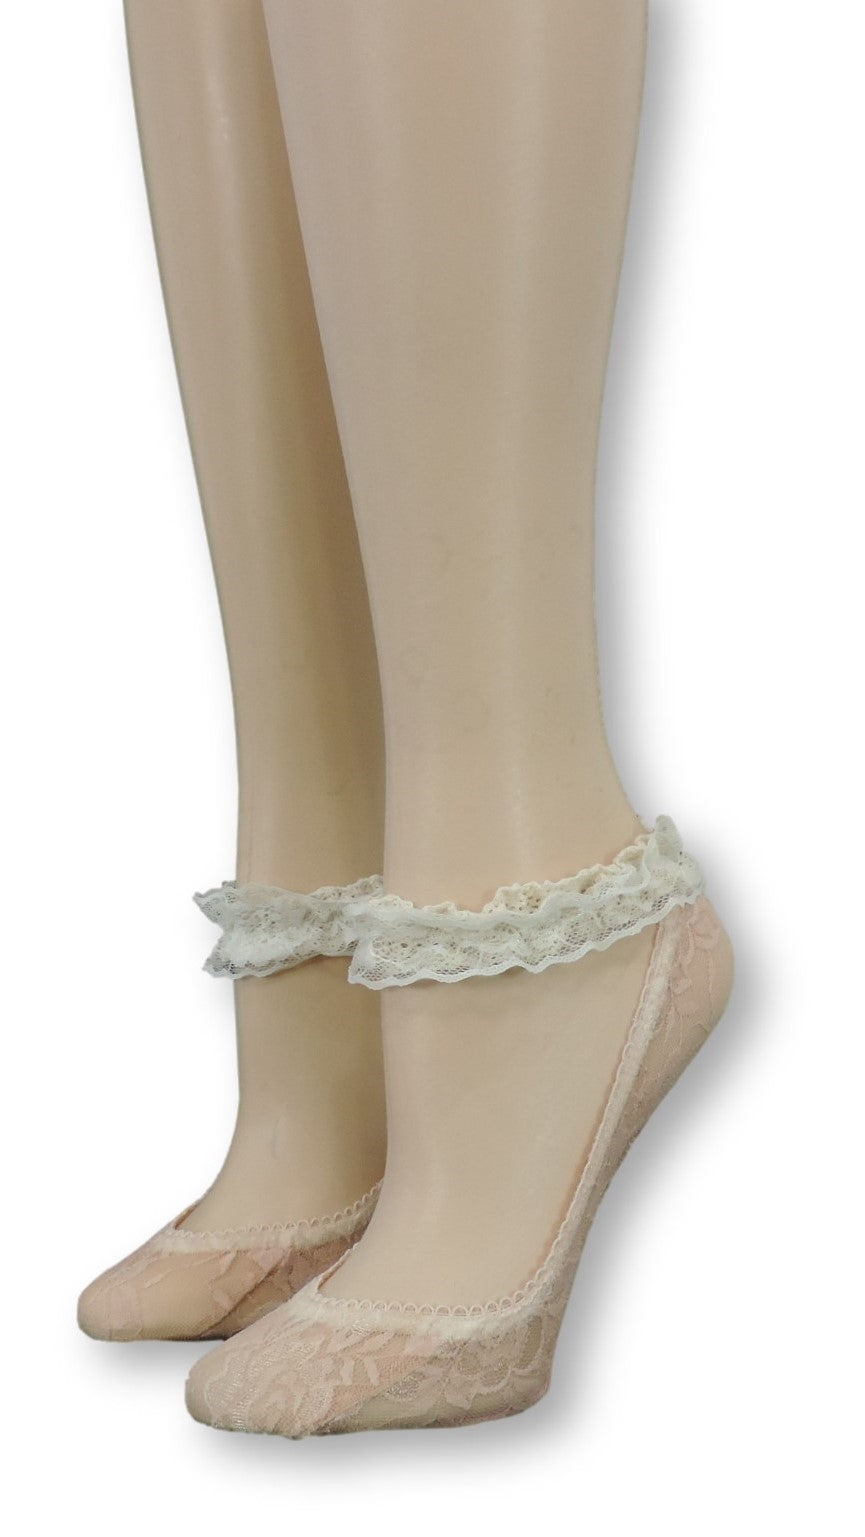 Peach Ankle Sheer Socks with Antique Lace